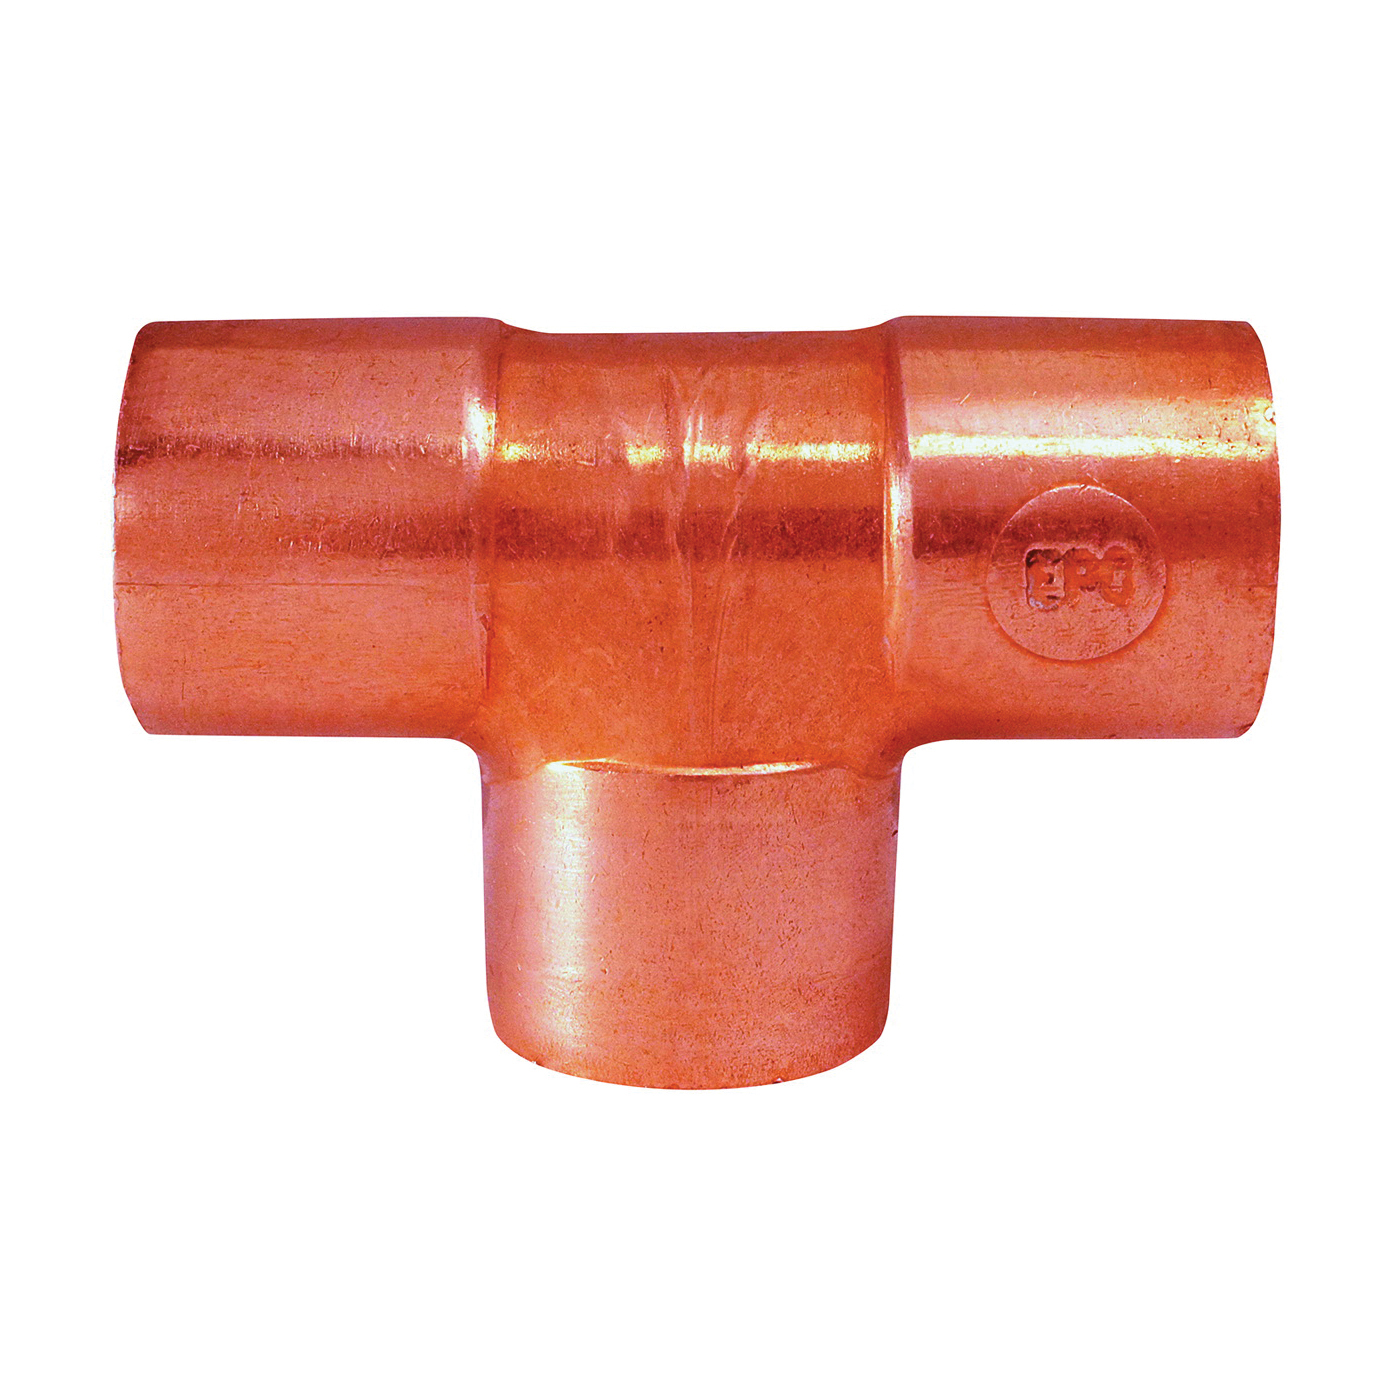 Picture of EPC 111 32700 Pipe Tee, 1/2 in, Sweat, Copper